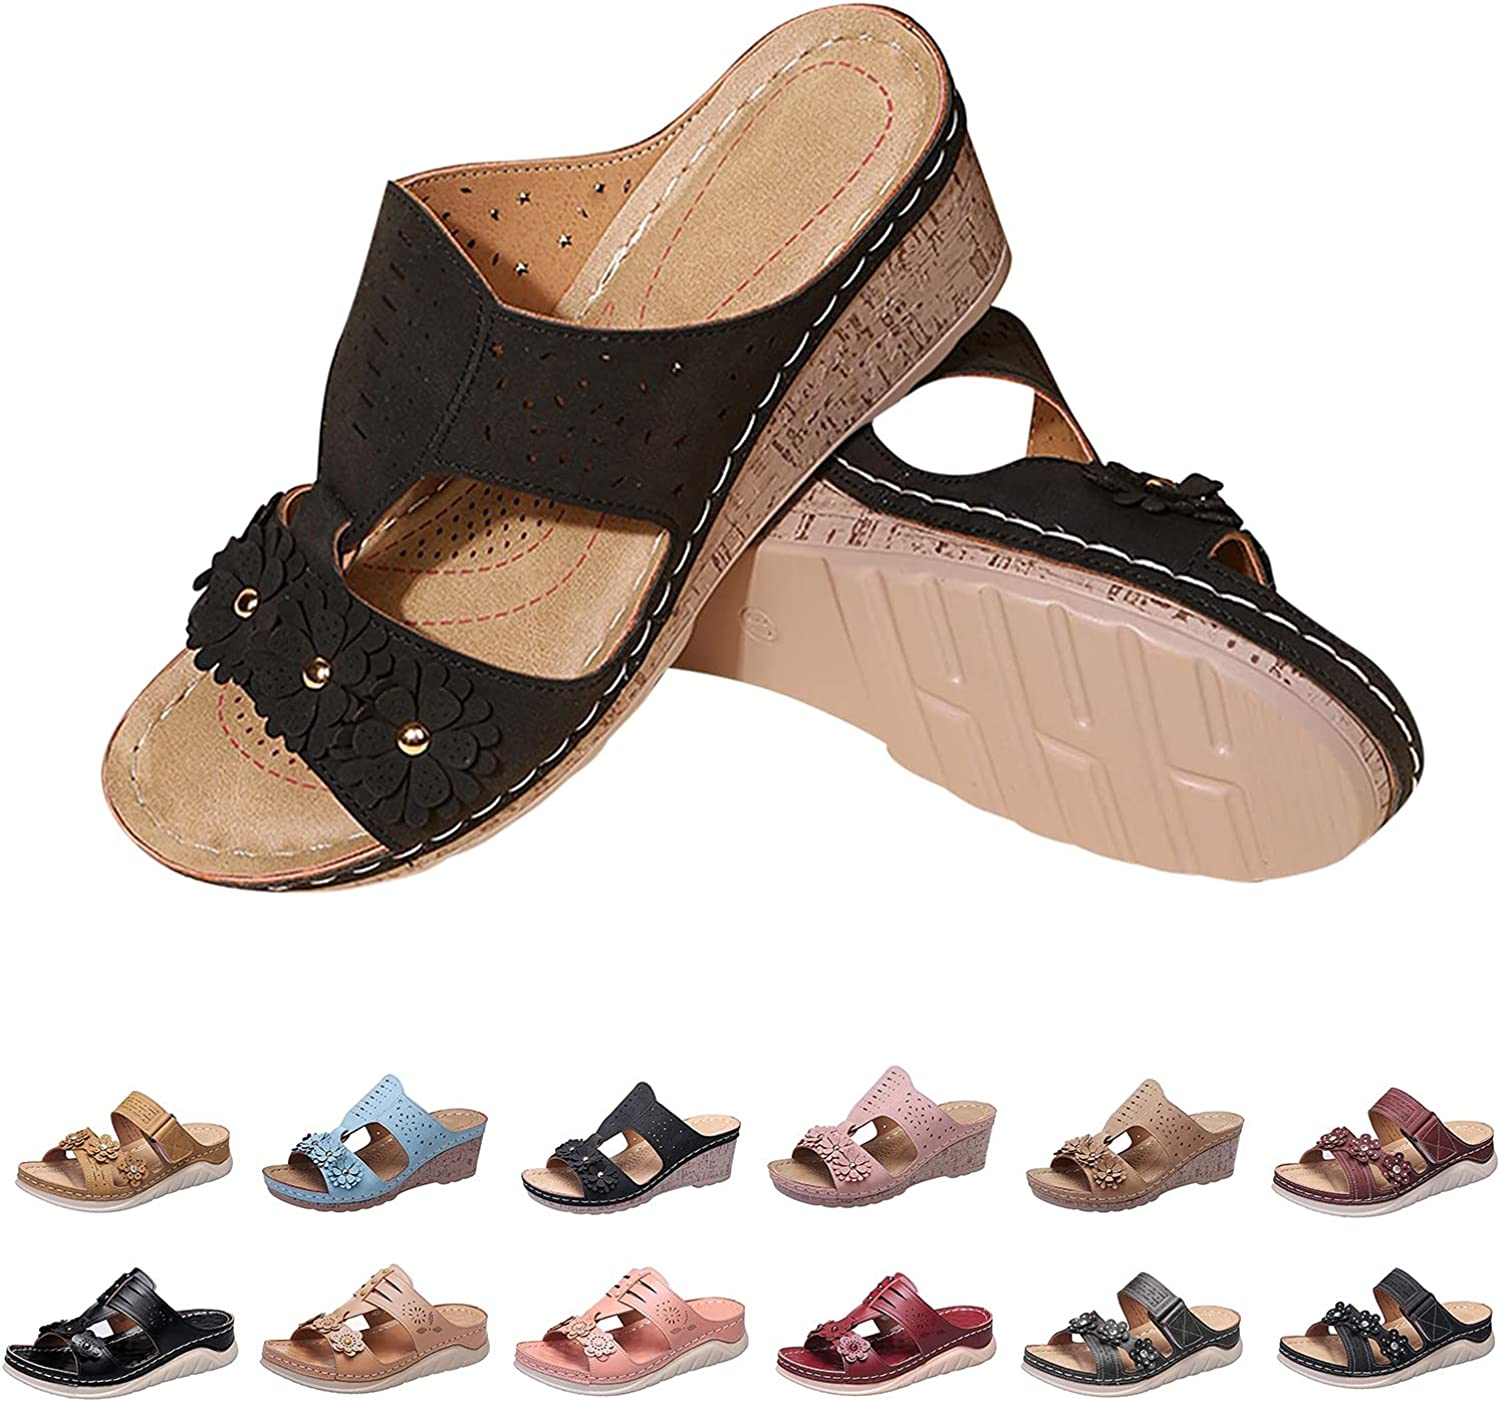 ZiSUGP Women's Sandals Comfortable for Women with Arch Support Casual Walking Wedge Sandals Shoes Comfortable Lightweight